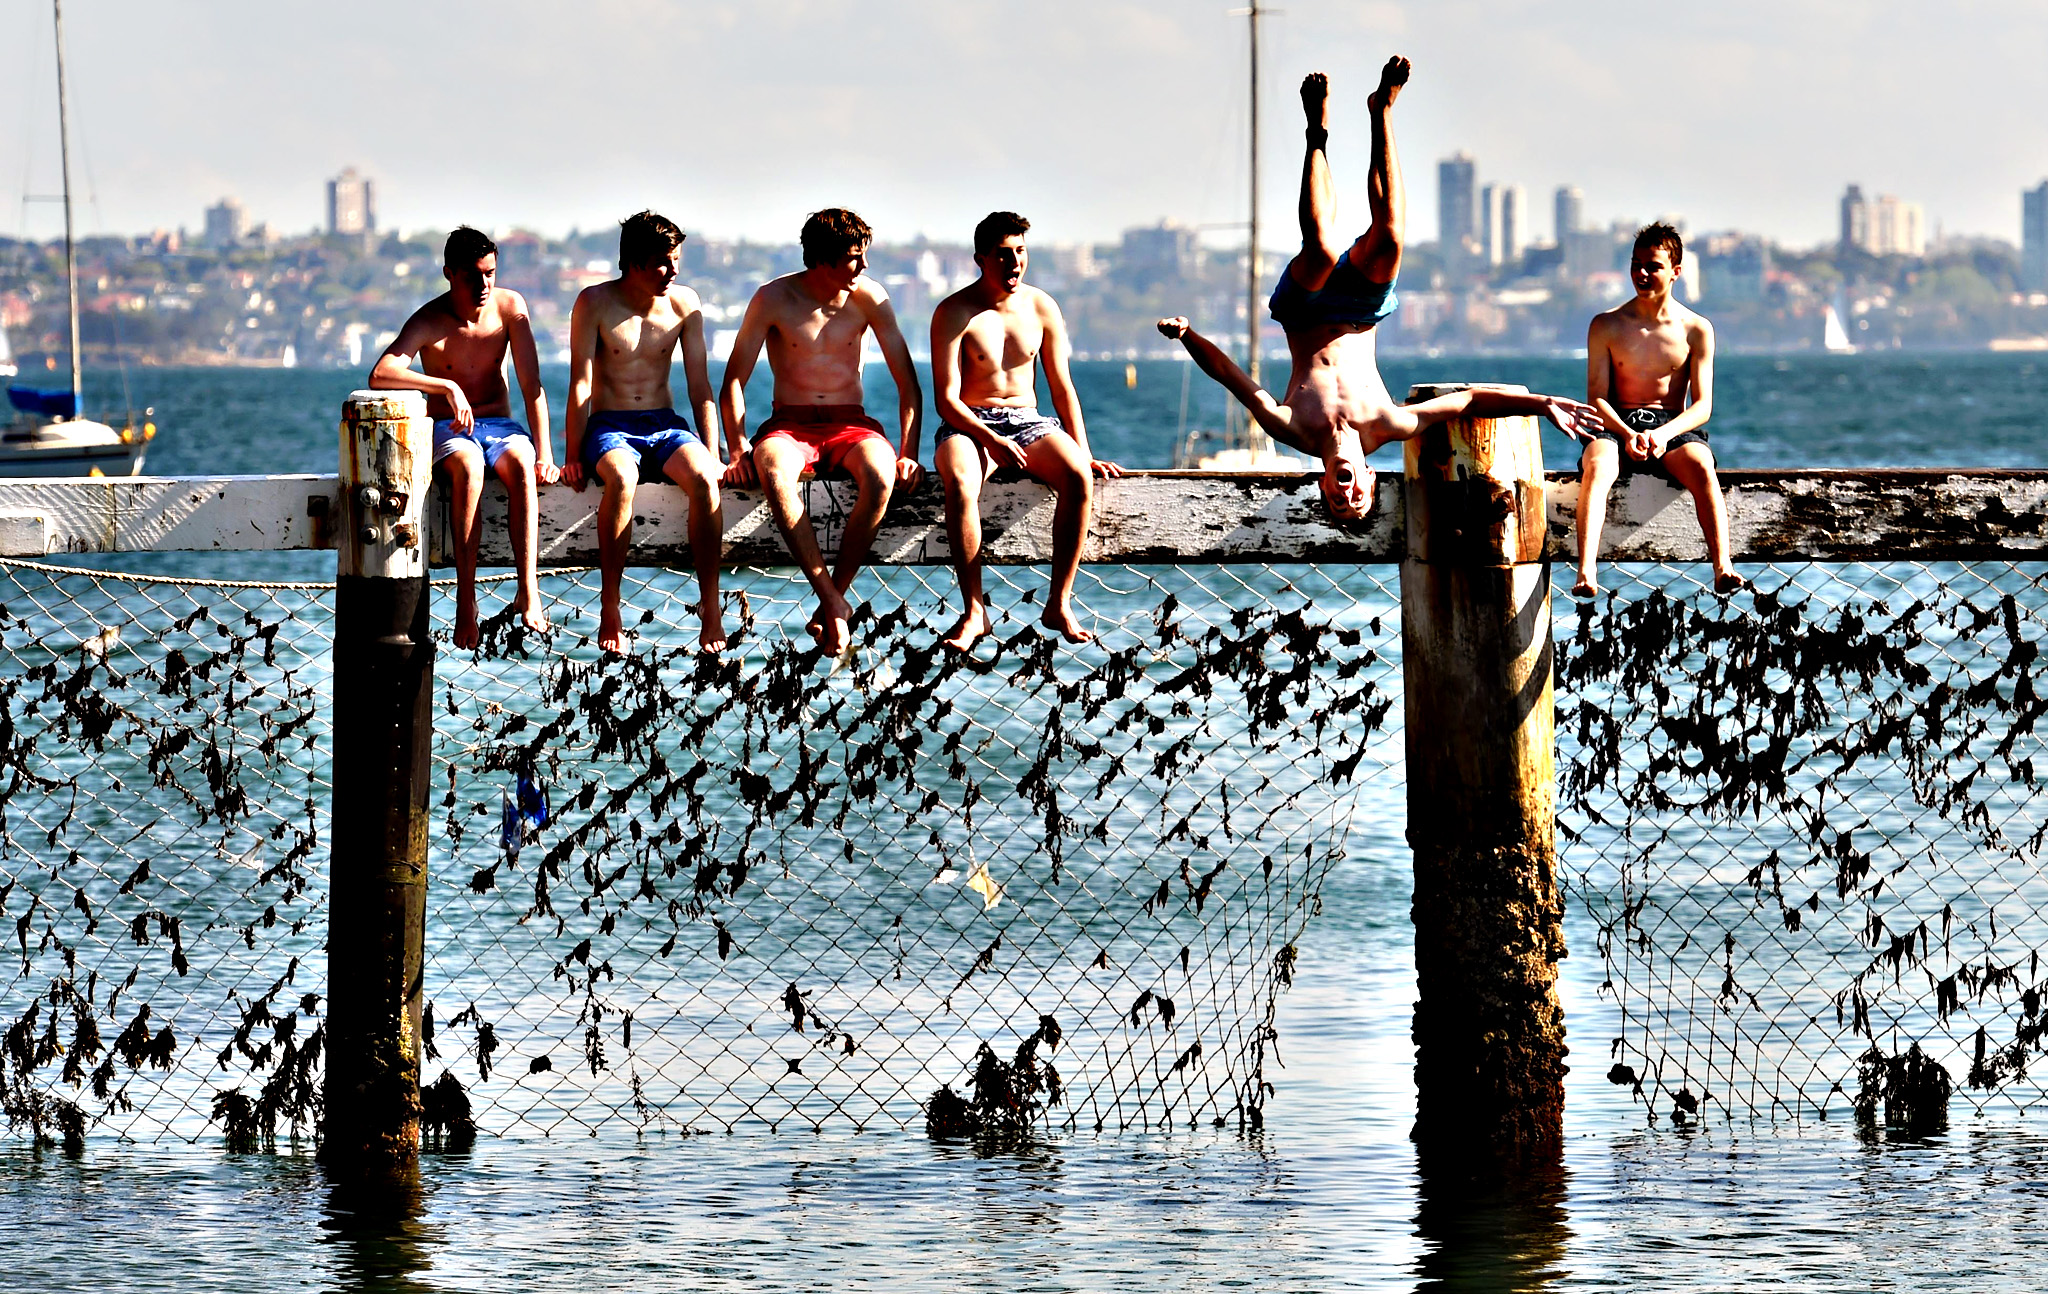 """Children play on a shark net at Little Manly Cove as shark experts assess cutting-edge technologies to counter attacks at a summit in Sydney on September 29, 2015, following an """"unprecedented"""" spate of encounters in eastern Australia this year that has left one dead and seven injured.  Australia is home to one of the world's highest incidents of shark attacks, with the two-day summit, which include researchers from the US and South Africa, organised in part to address community fears after the recent incidents on the north coast of the most populous state New South Wales"""